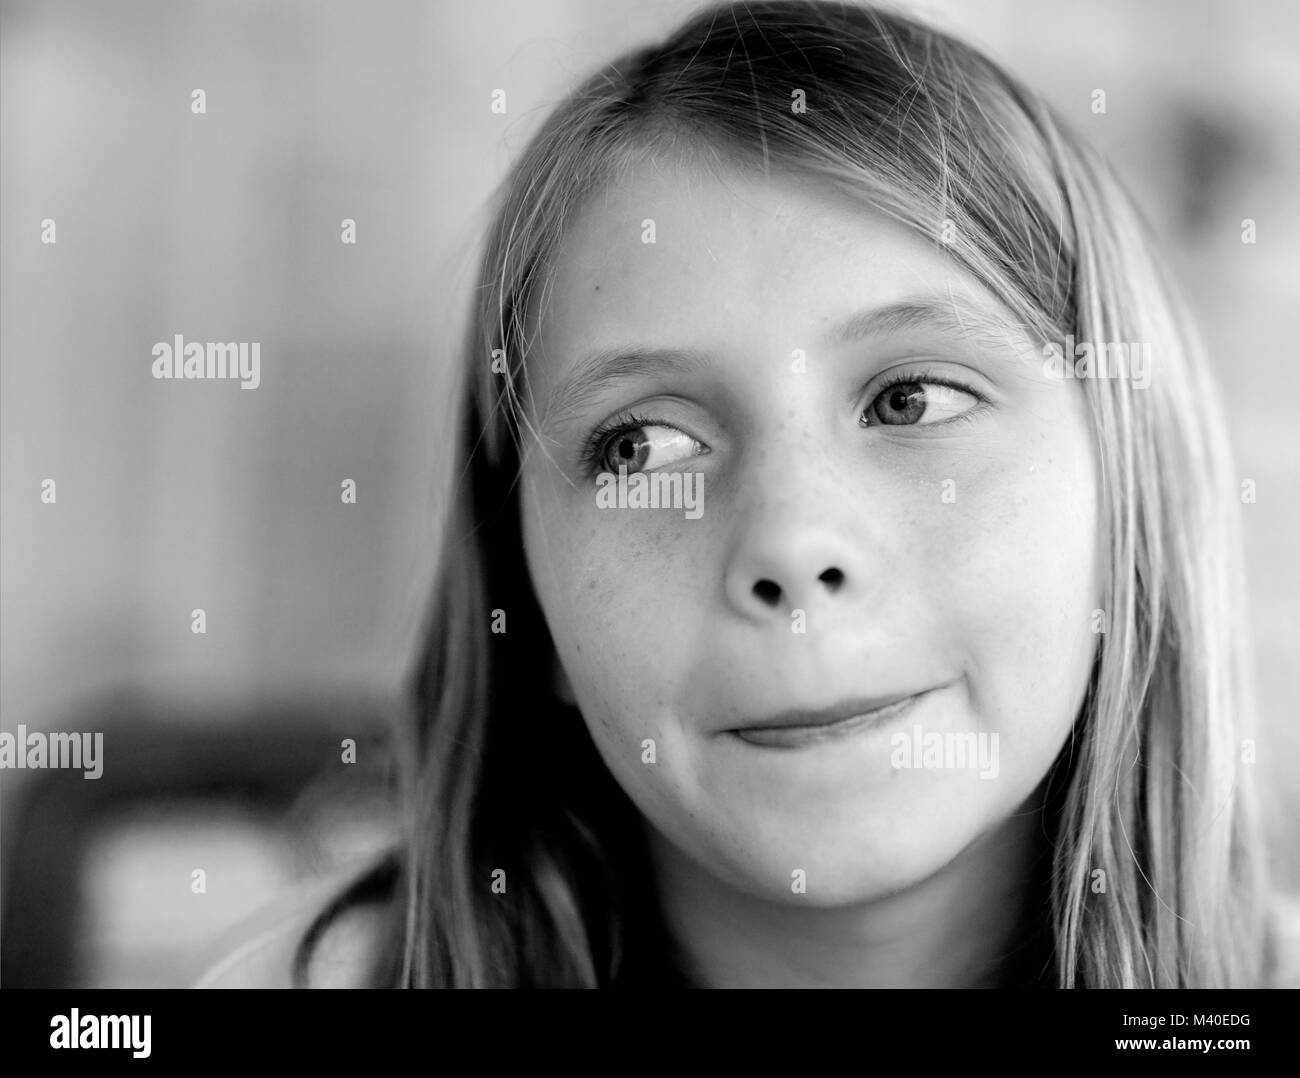 A black and white portrait of young girl with blond hair and blue eye. - Stock Image